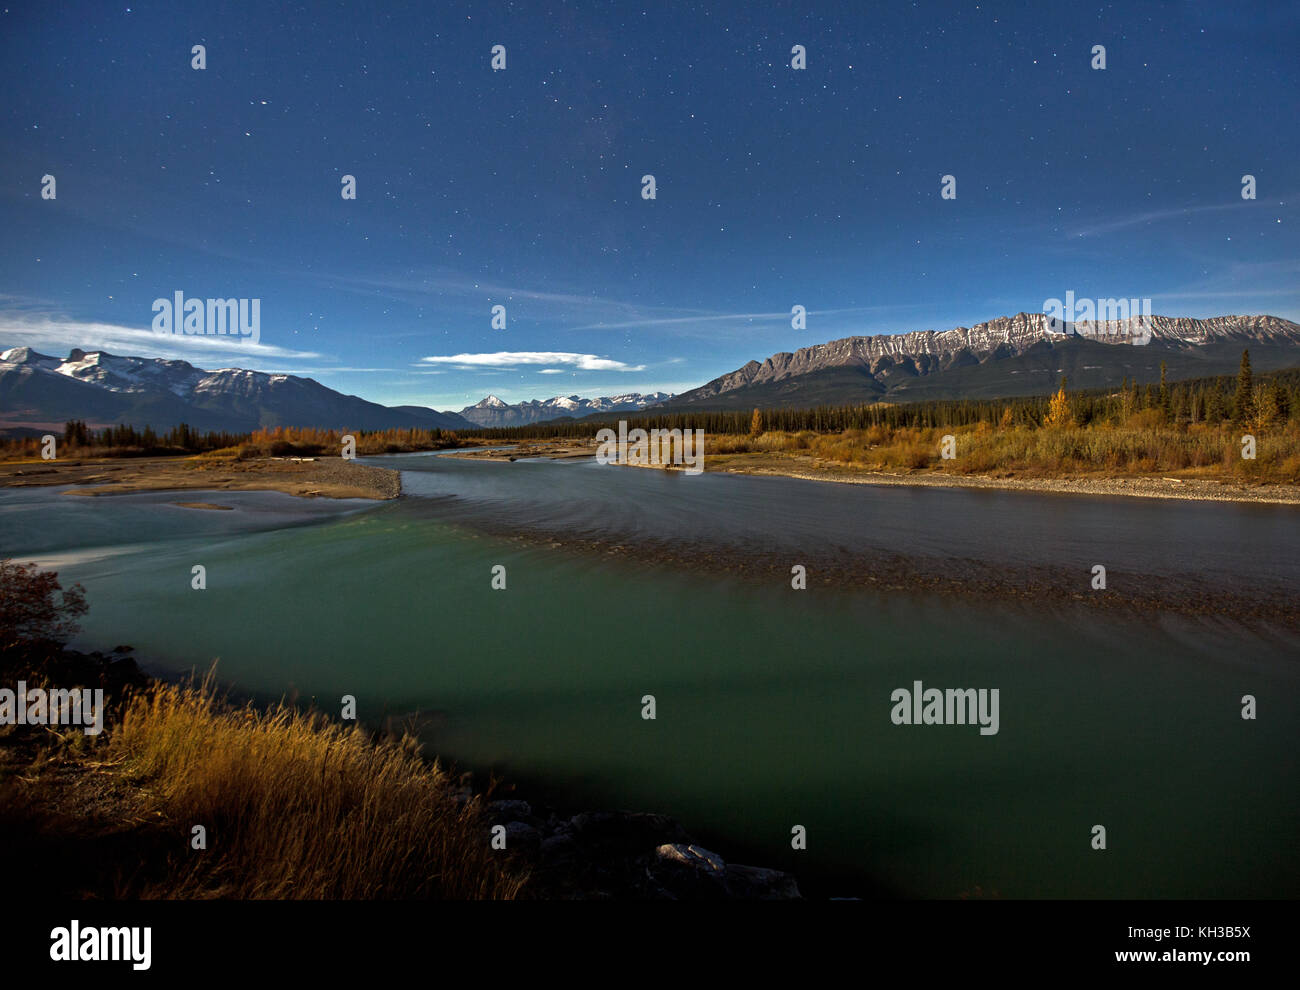 the athabasca river, with pyramid mountain in background, at night - Stock Image